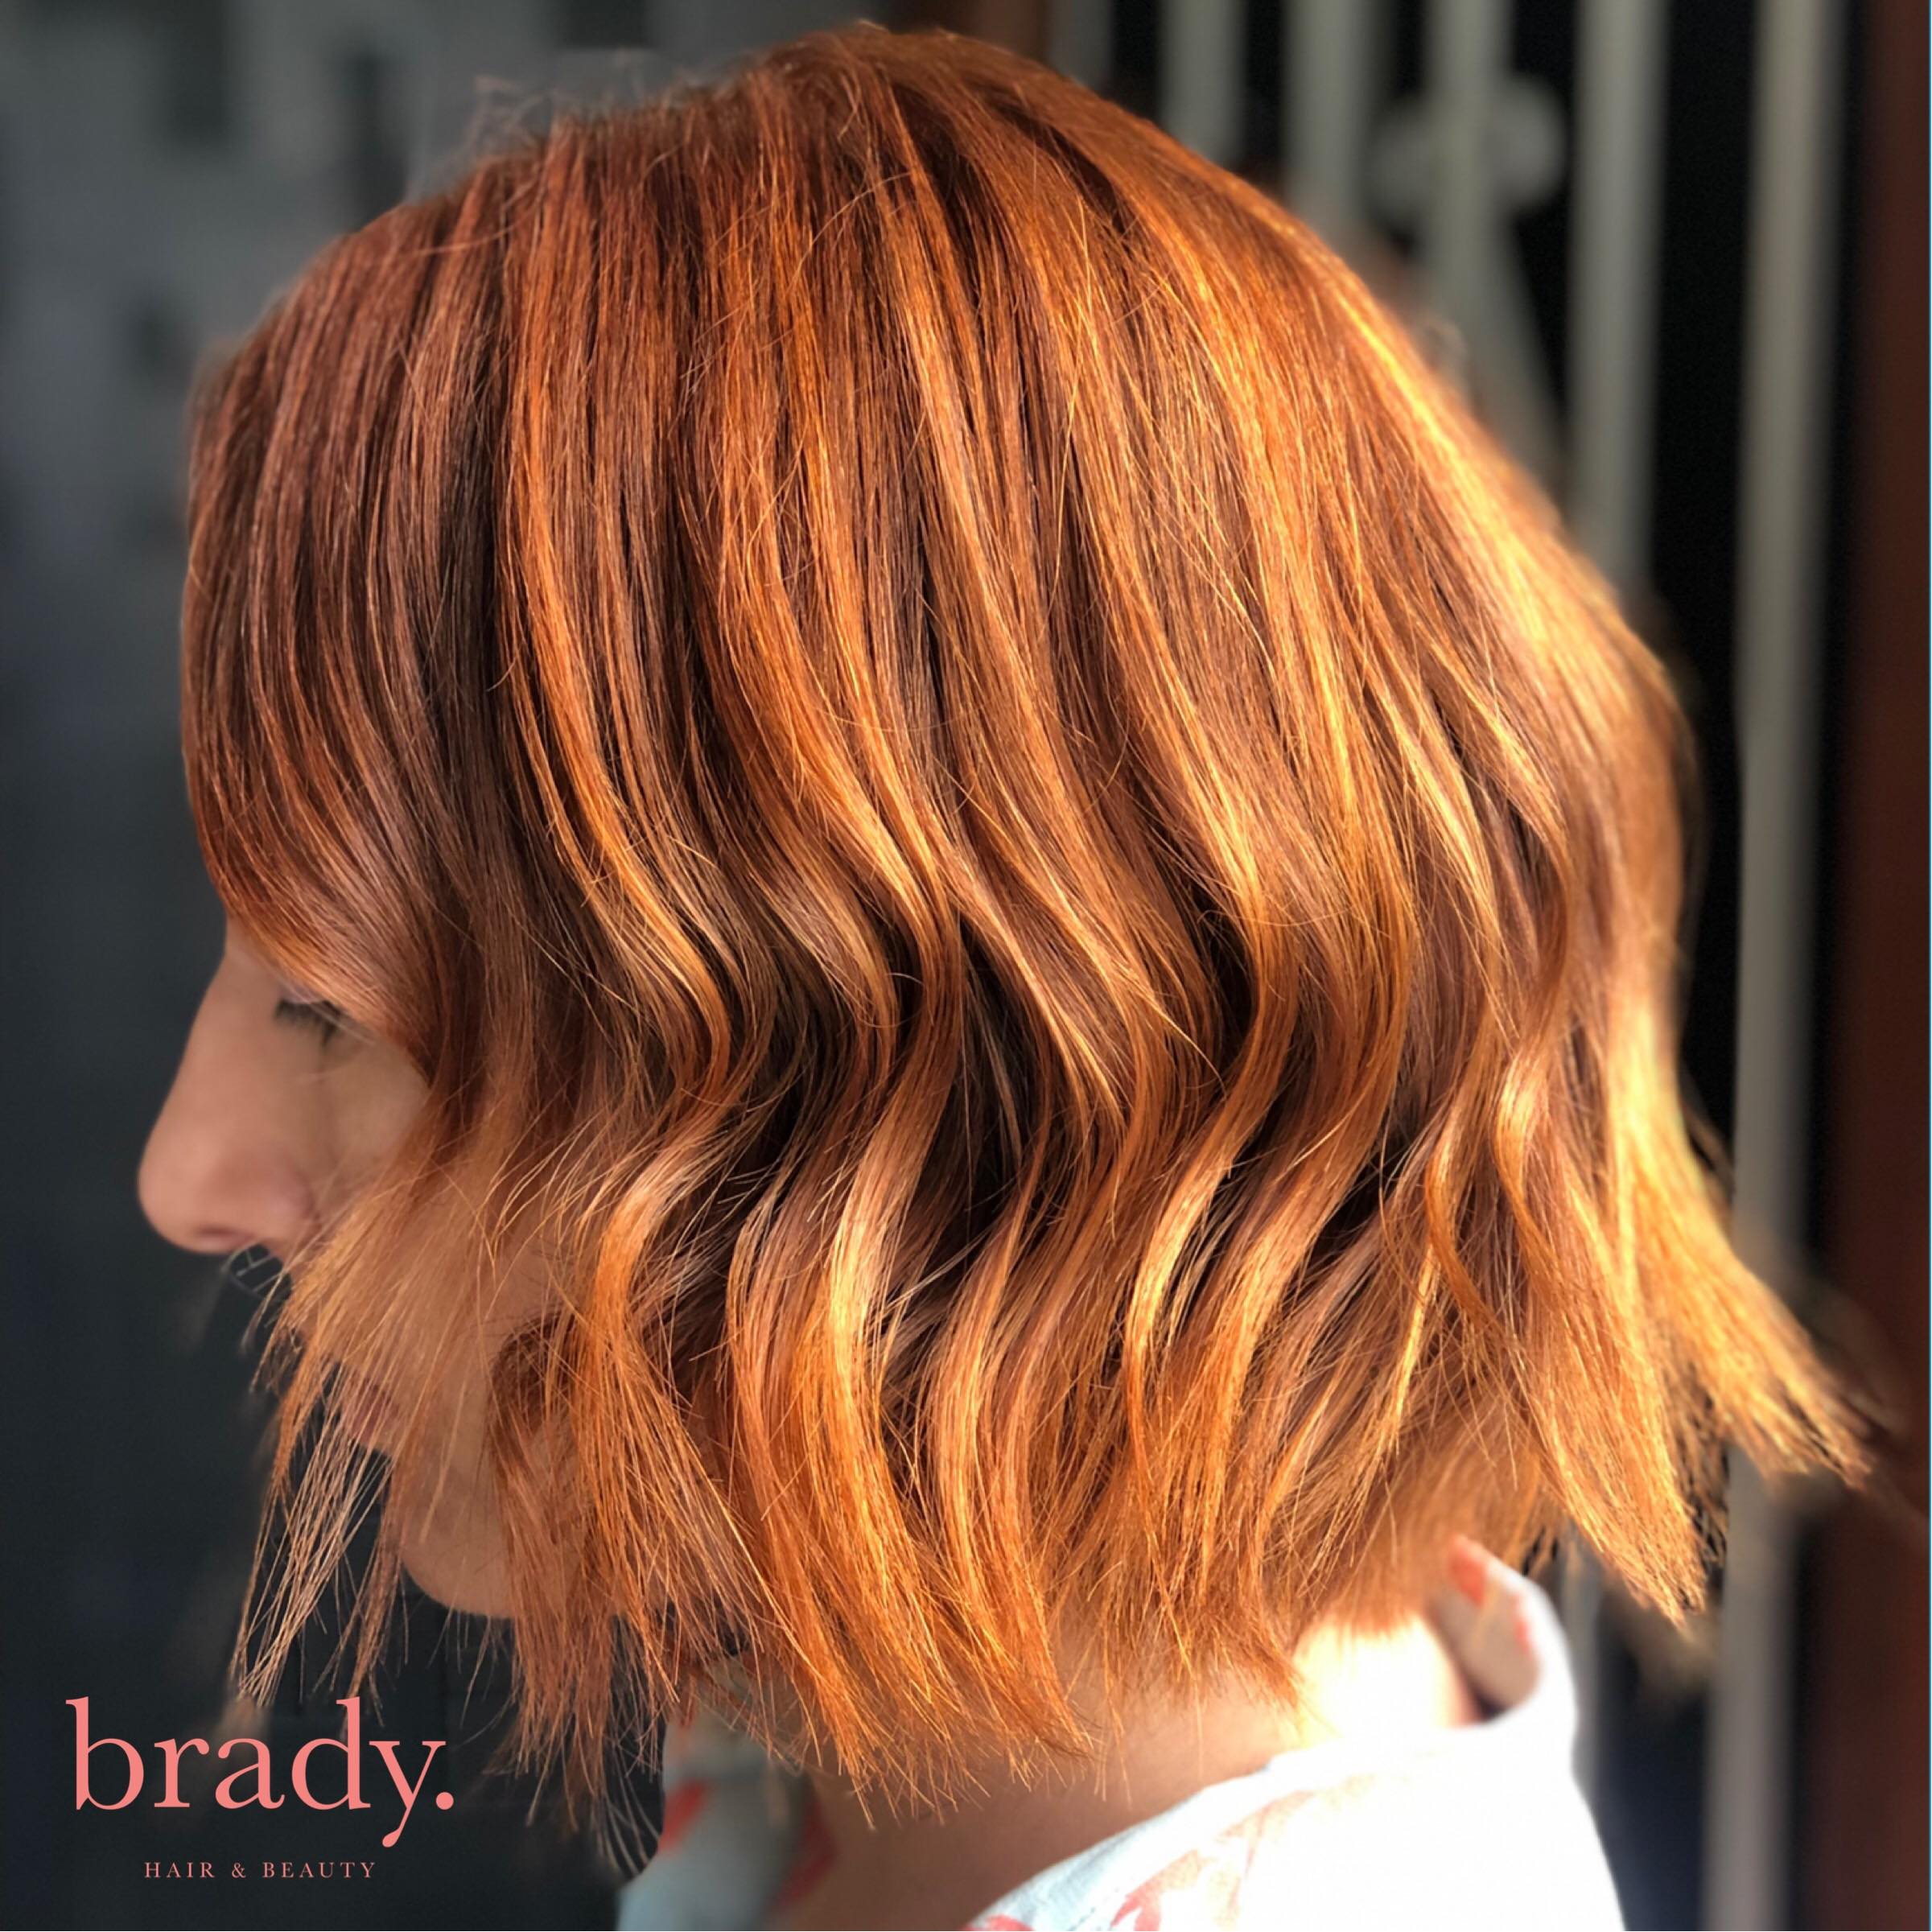 Photo of client with red hair, coloured and styled by Brady. Hair & Beauty, Toowong, Brisbane.